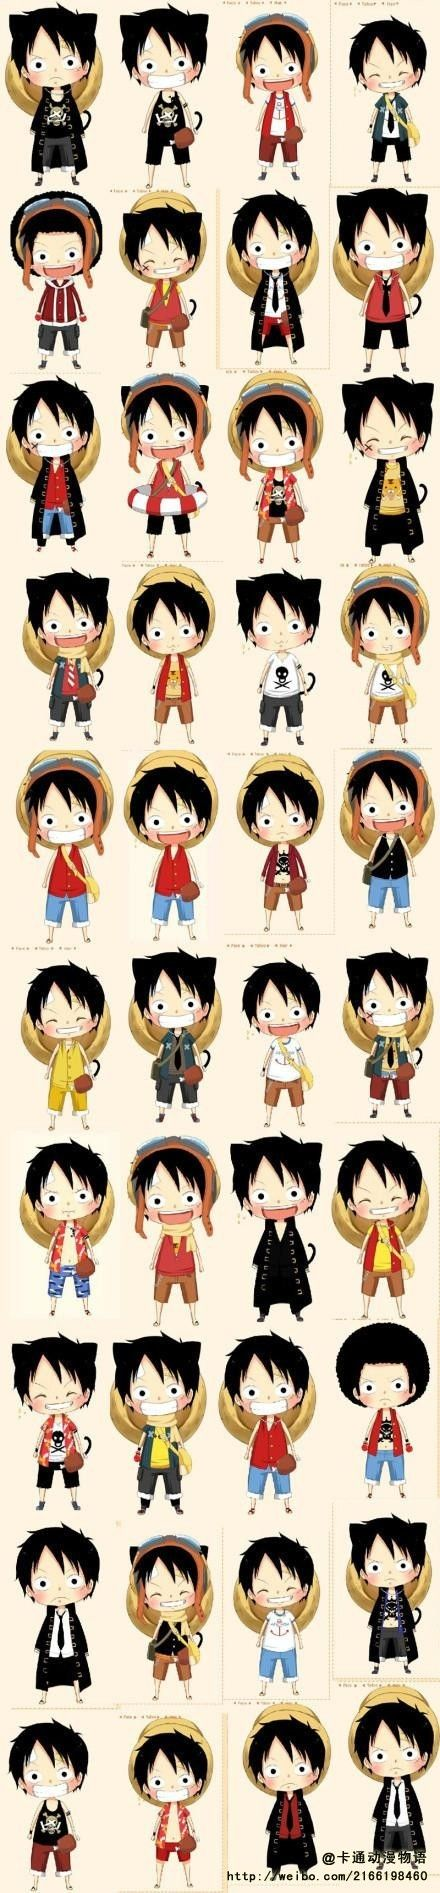 Adorably Luffy! #OnePiece #anime #luffyness